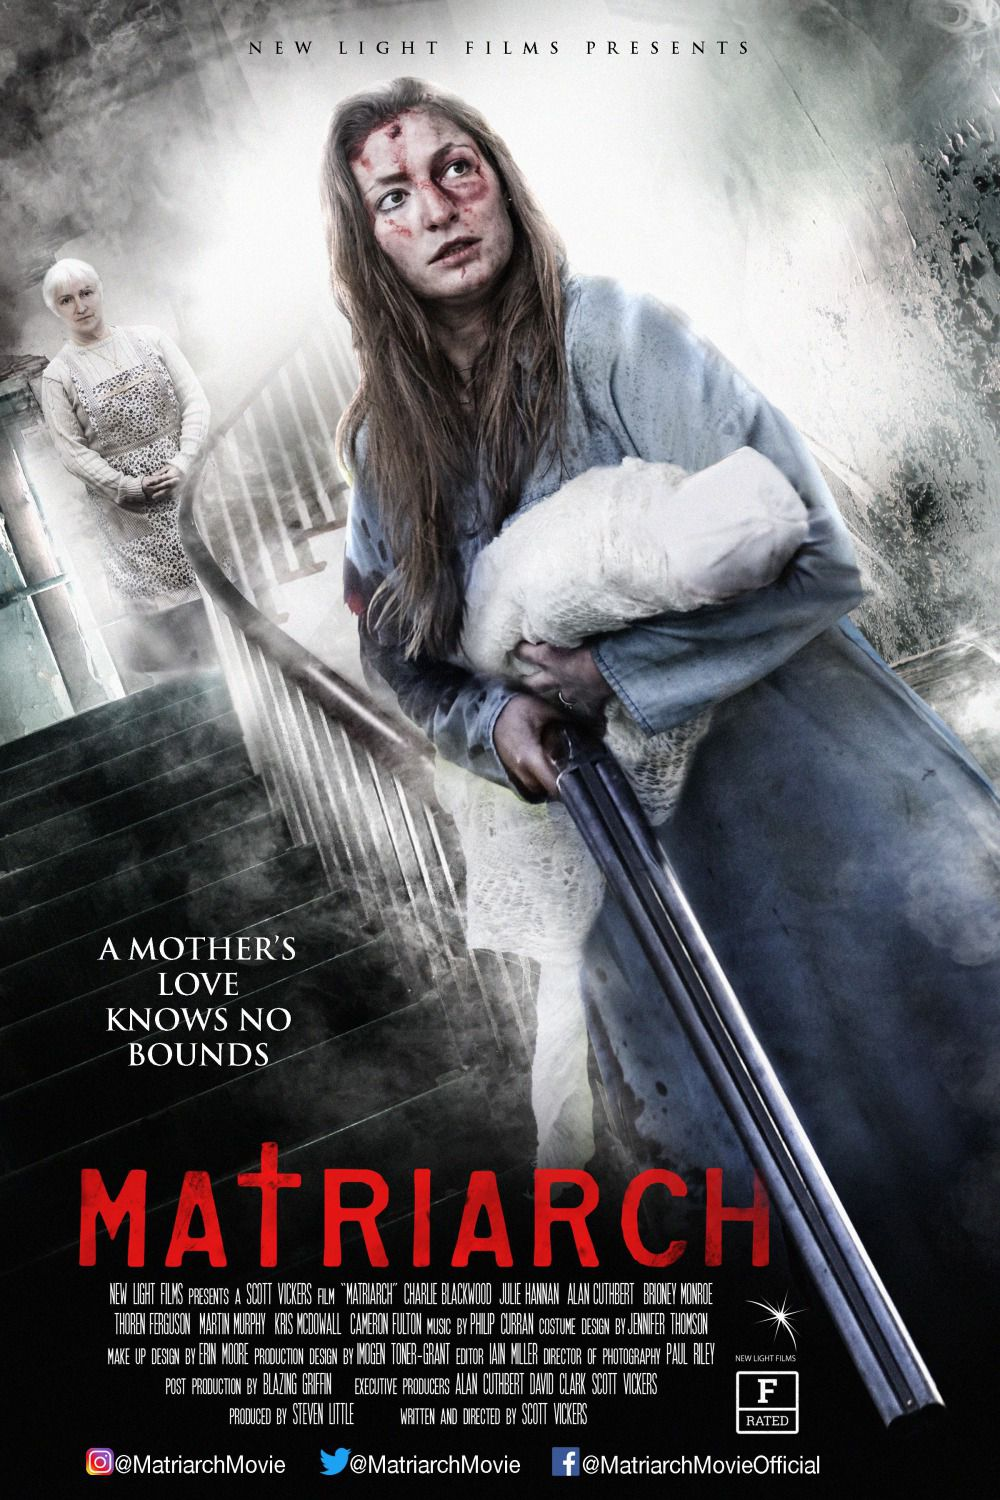 Matriarch poster